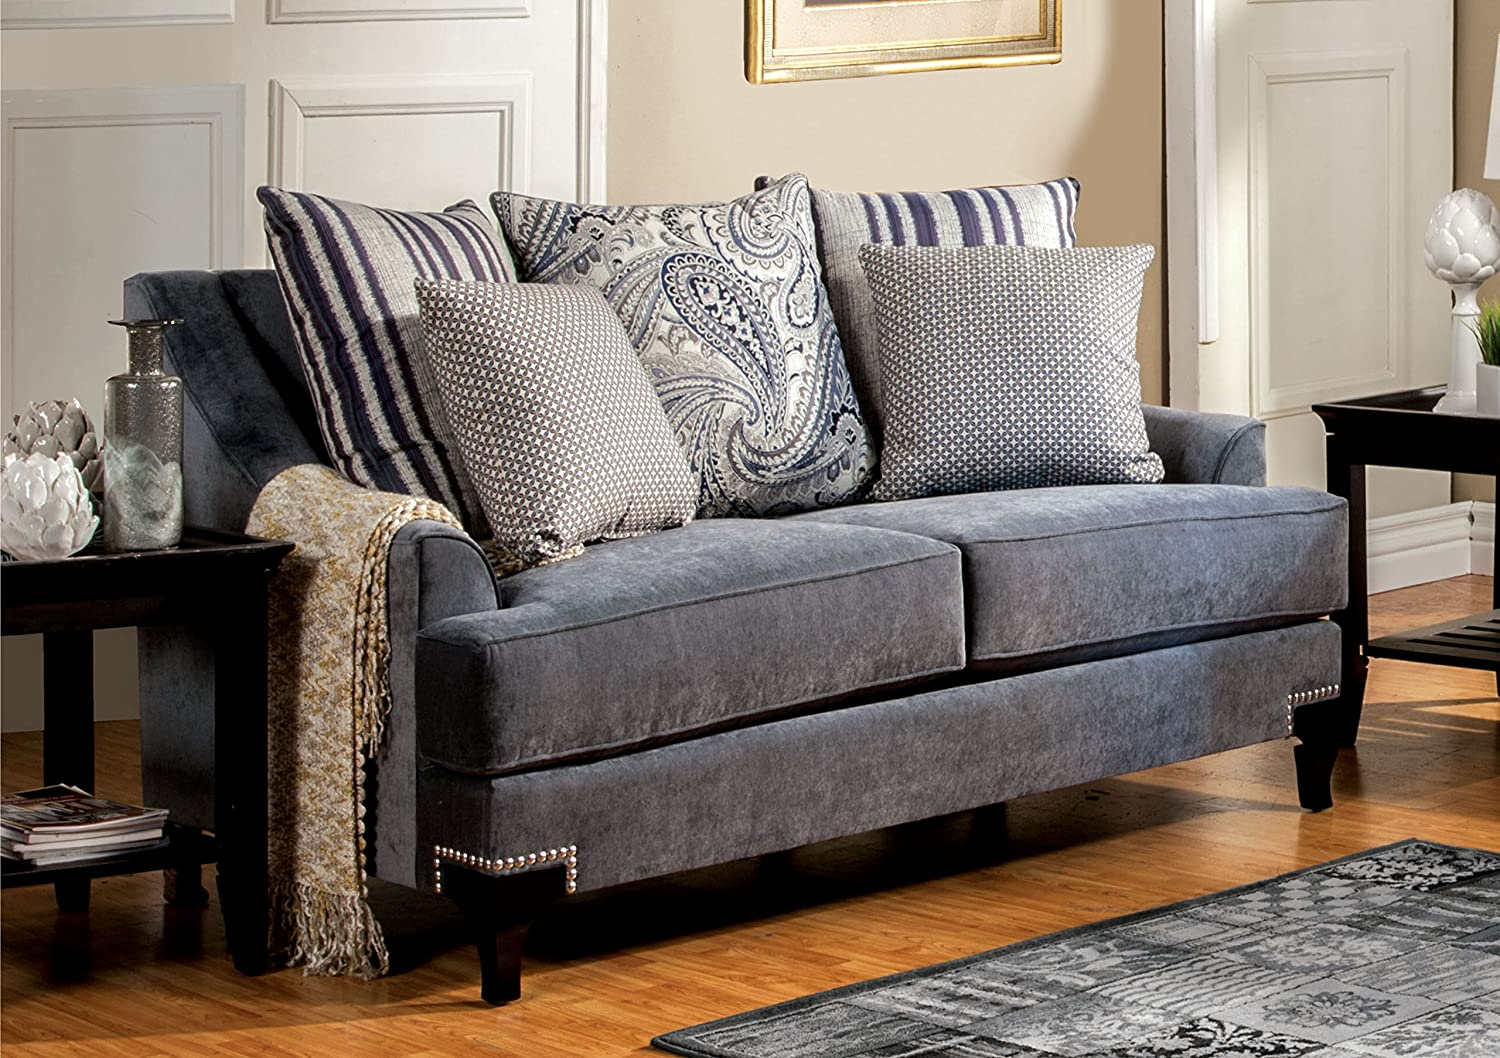 Furniture of America Paisley Love Seat - Slate Blue